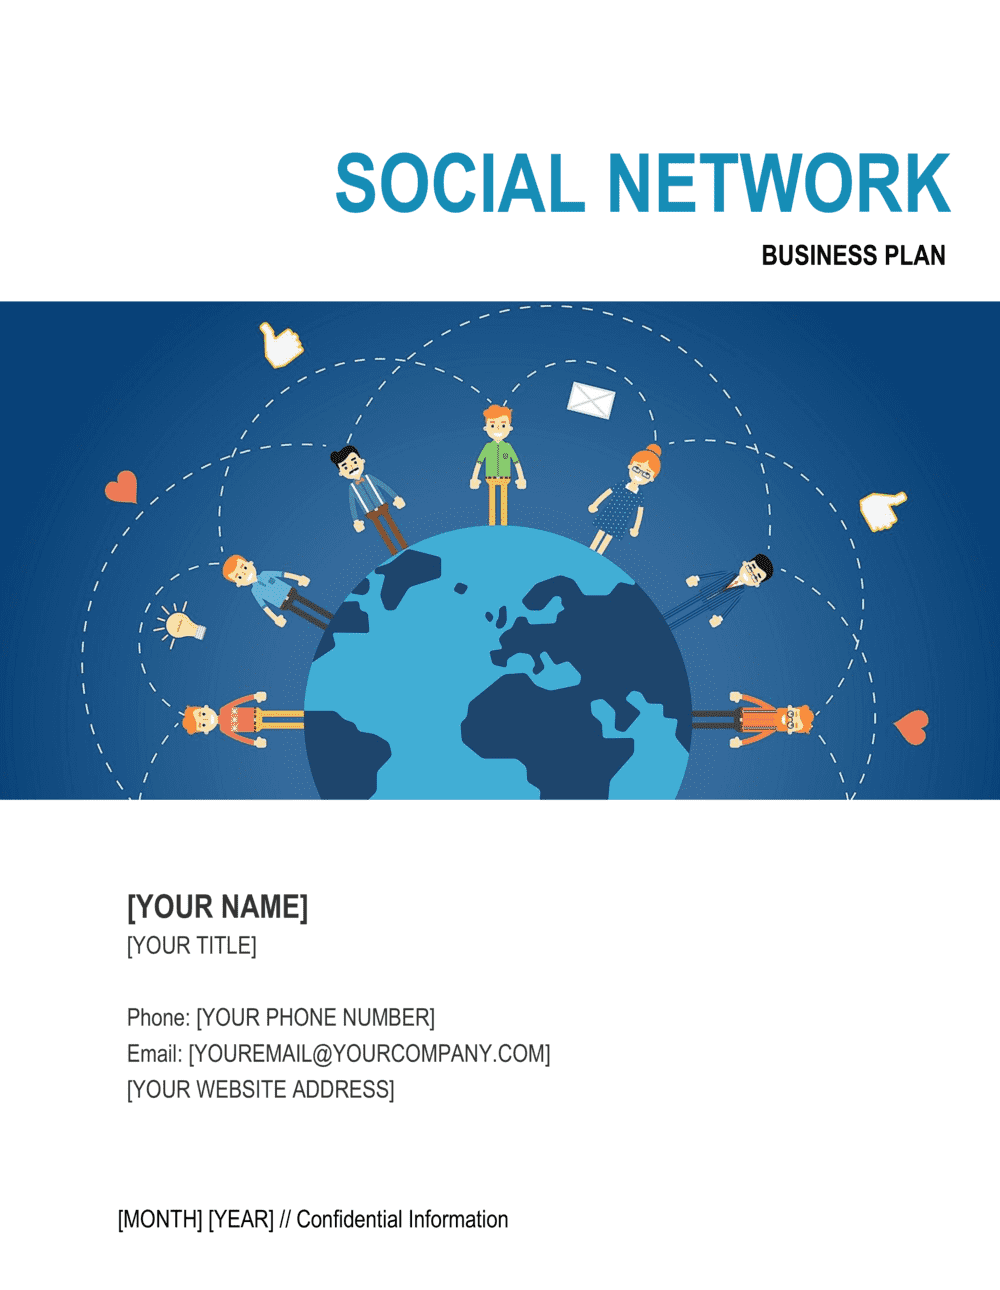 Business-in-a-Box's Social Network Business Plan Template